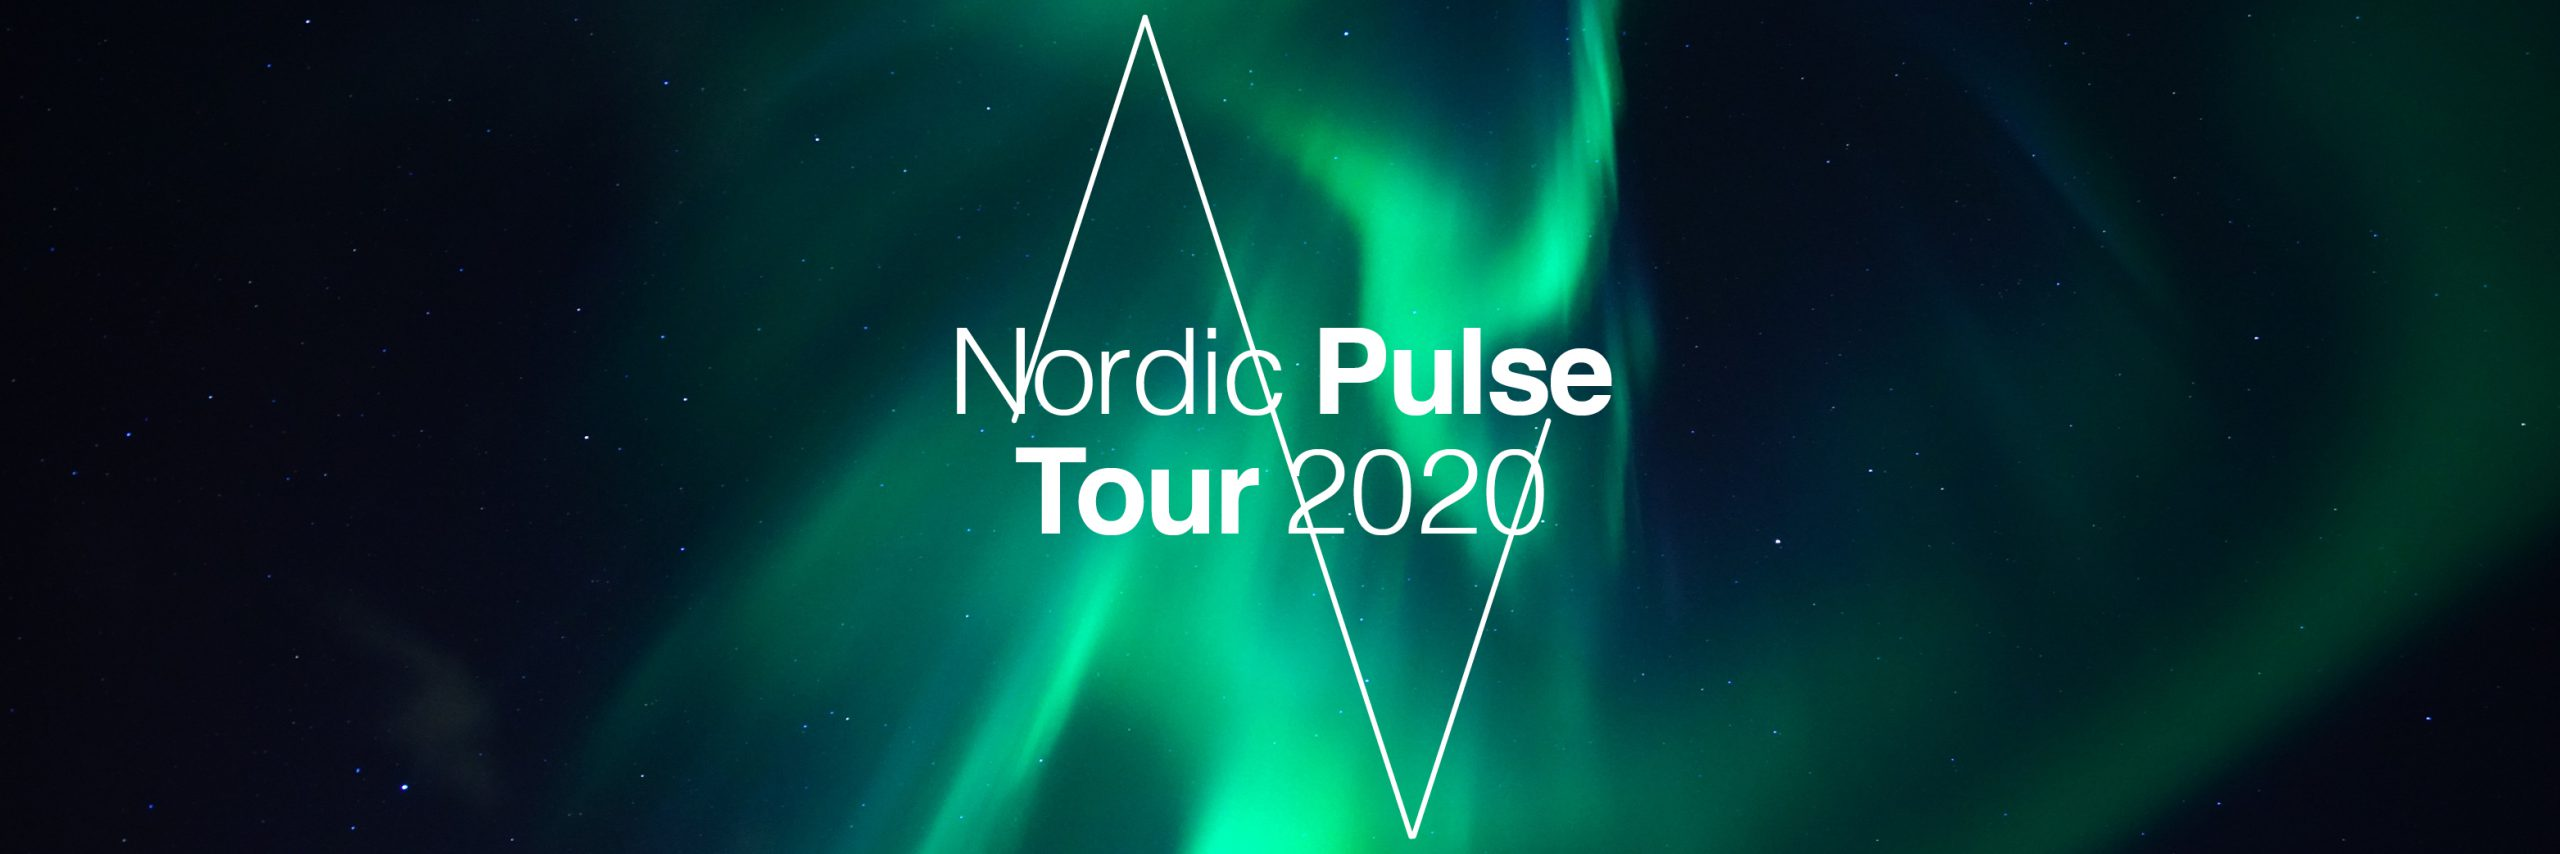 2020_Nordic Pulse_Key Visual